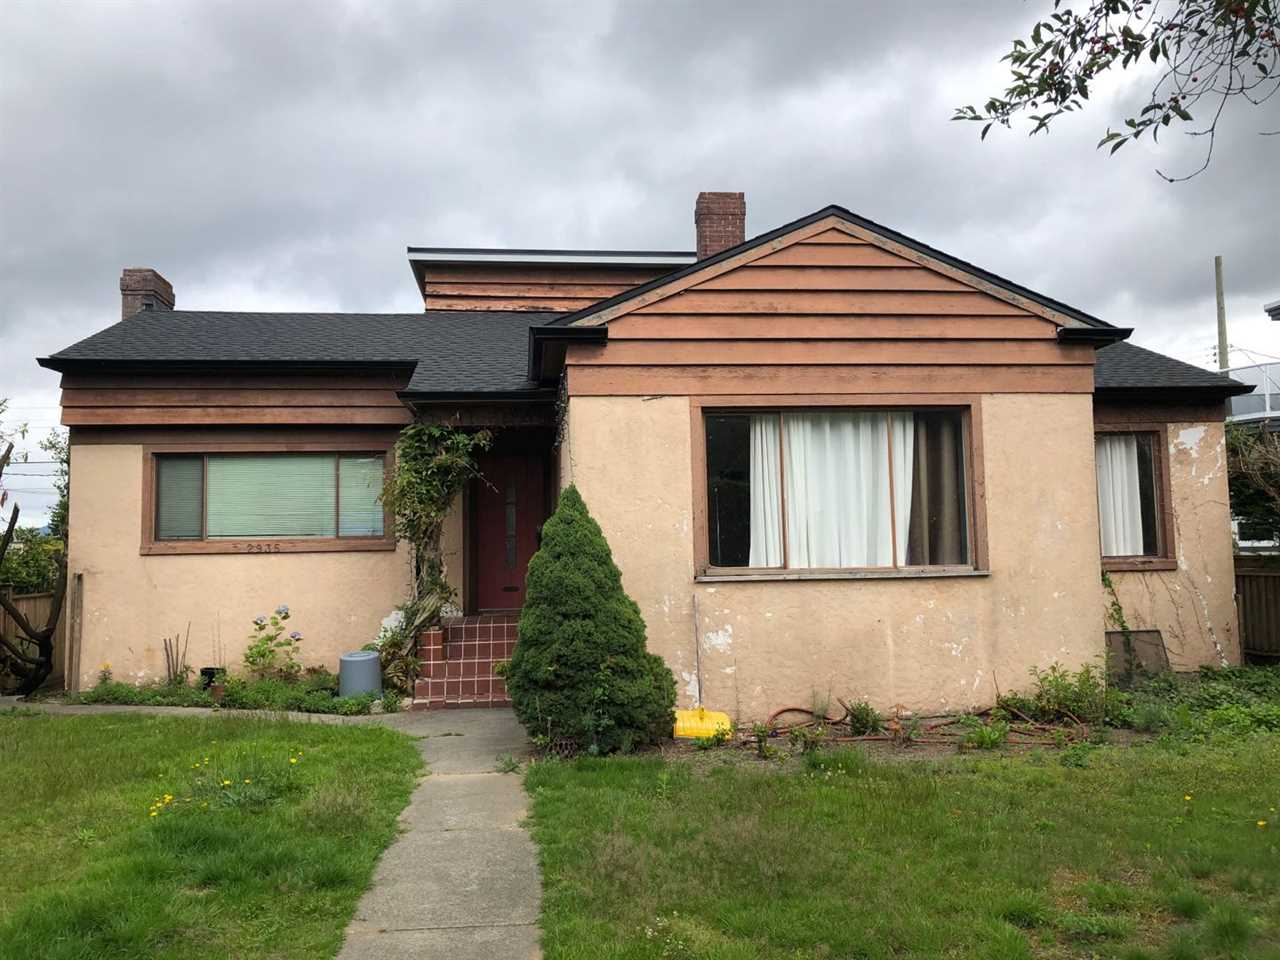 2935 W 27TH AVENUE - MacKenzie Heights House/Single Family for sale, 3 Bedrooms (R2487706) - #2